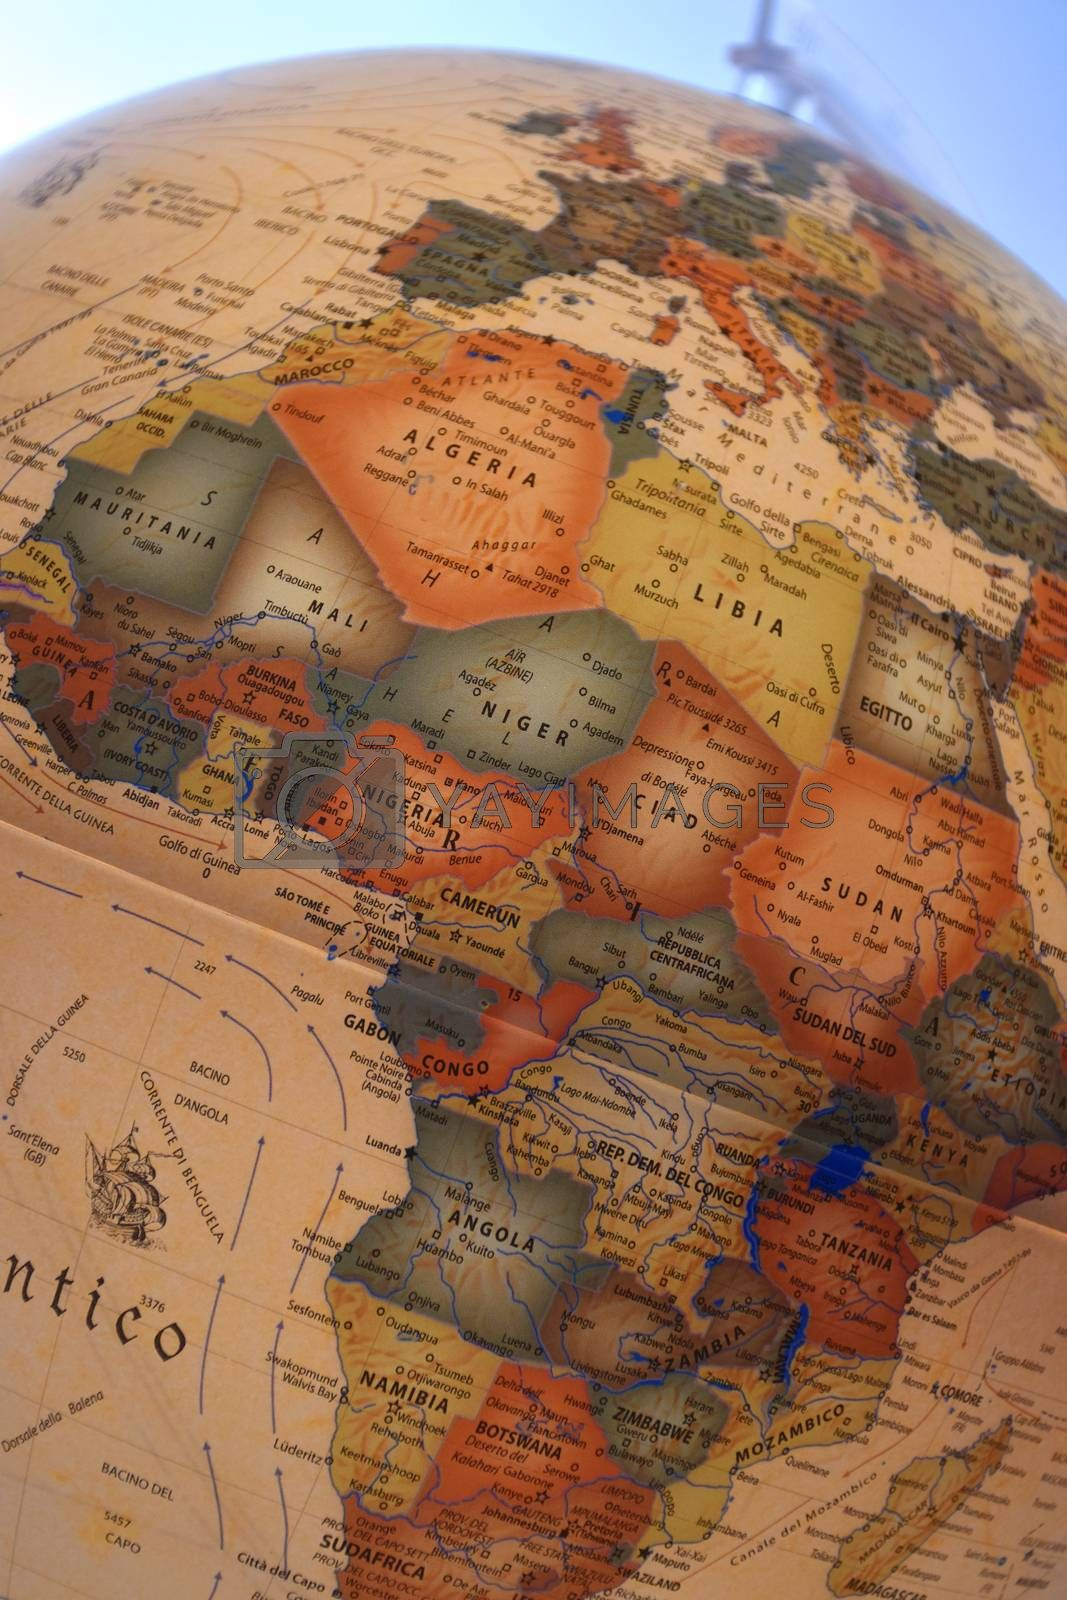 Close-up of a globe with the map of Africa and Europe.